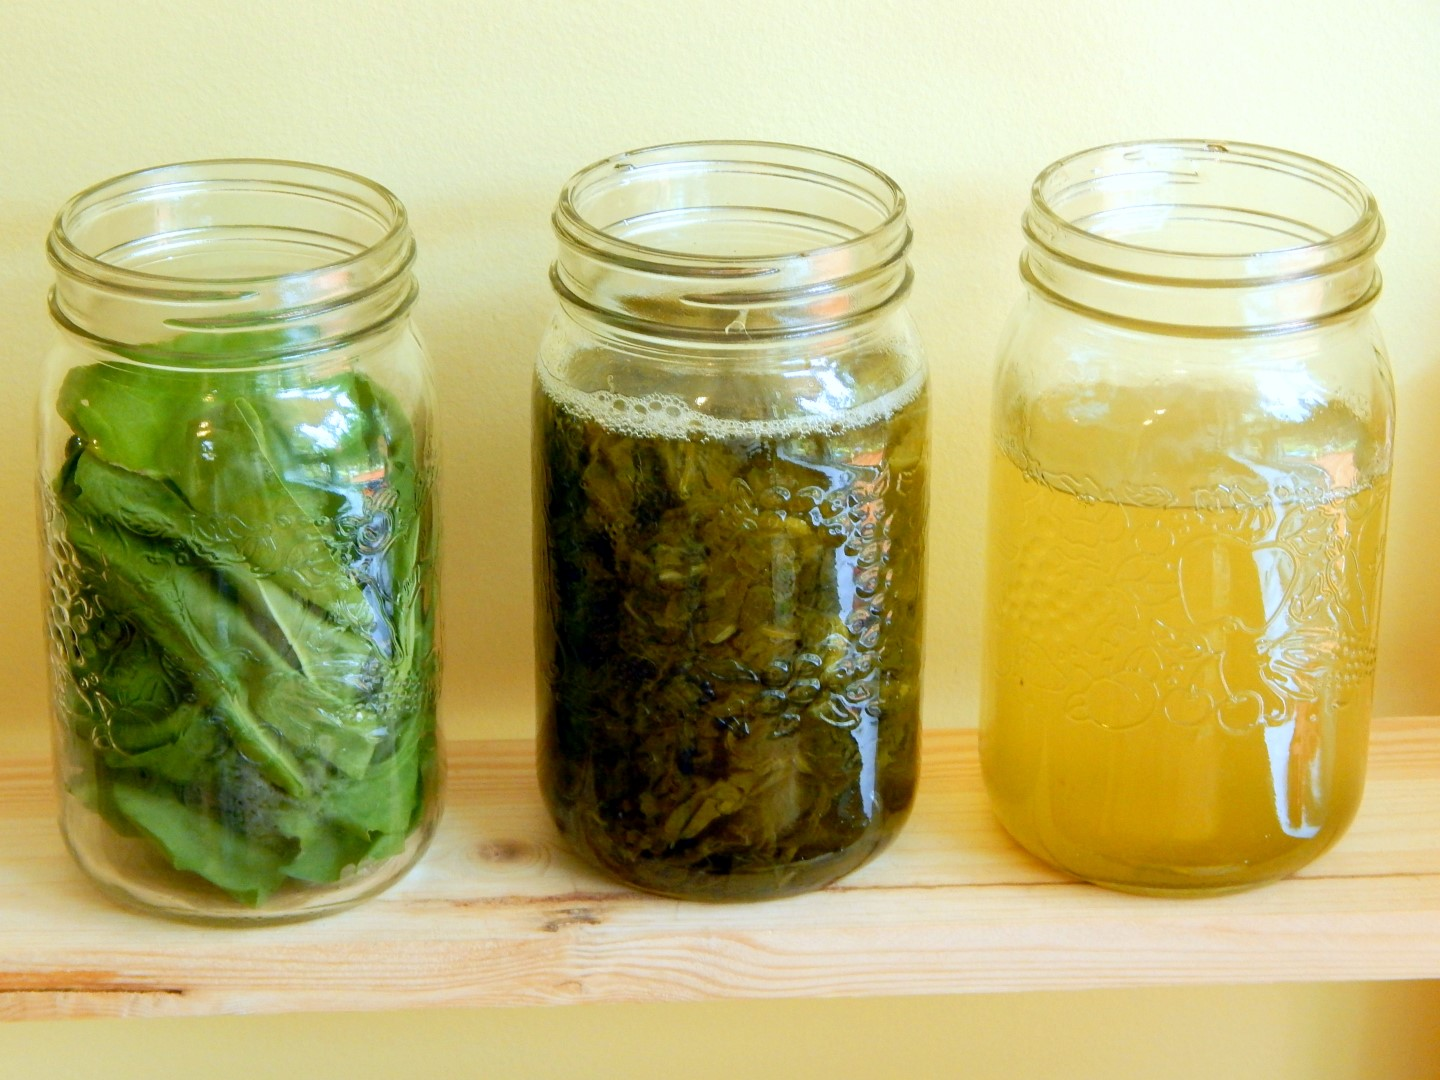 Stages in producing herbal elixirs